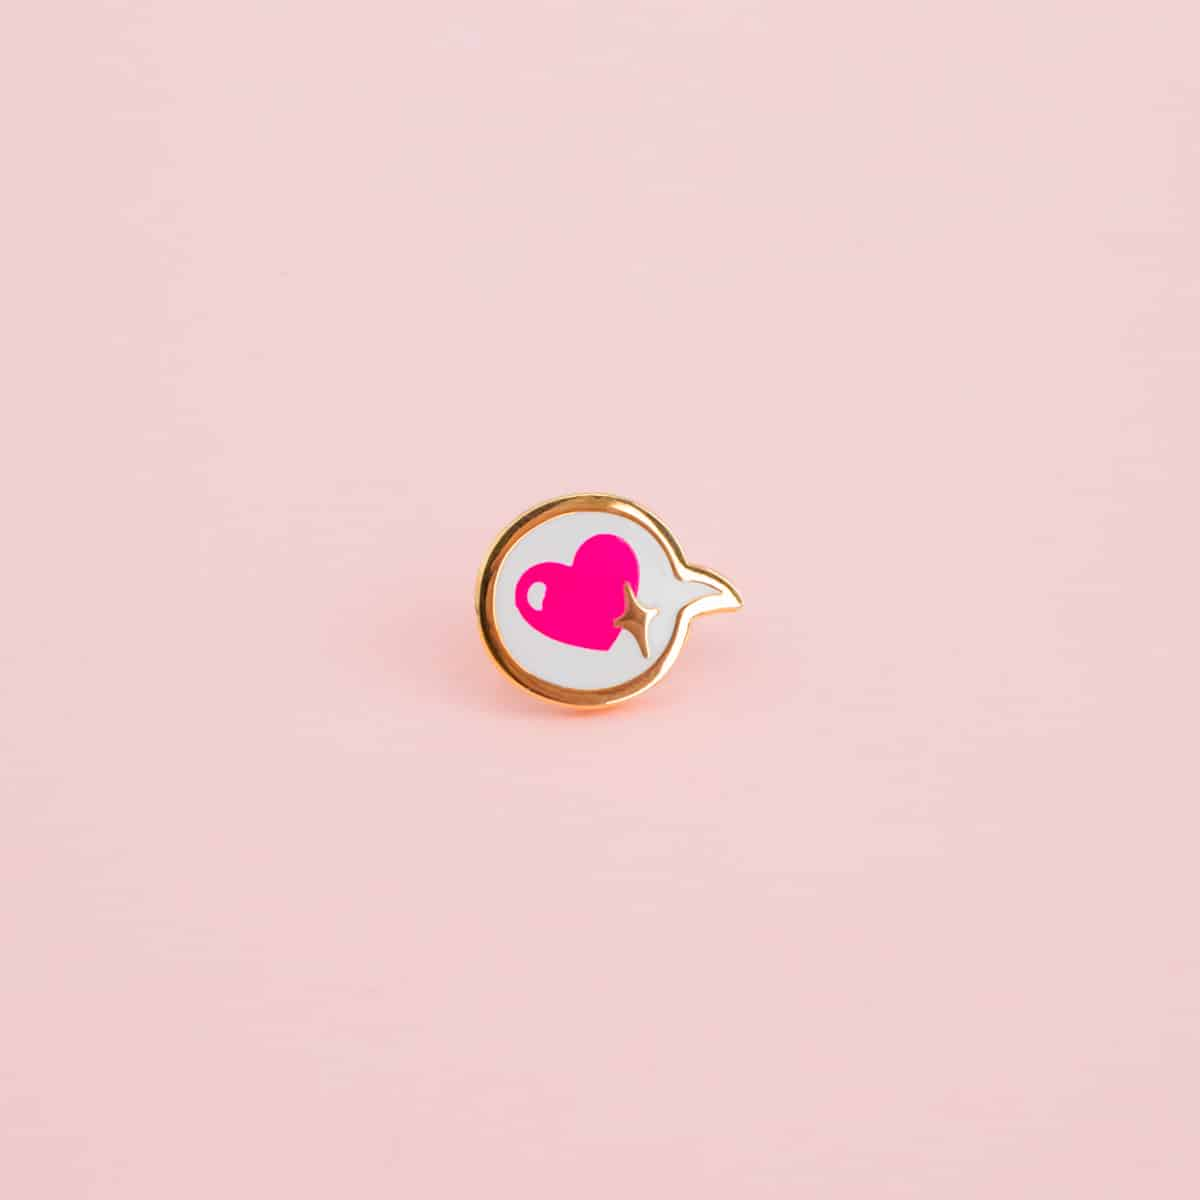 Love Heart Mini Pin By Oh Jessica Jessica